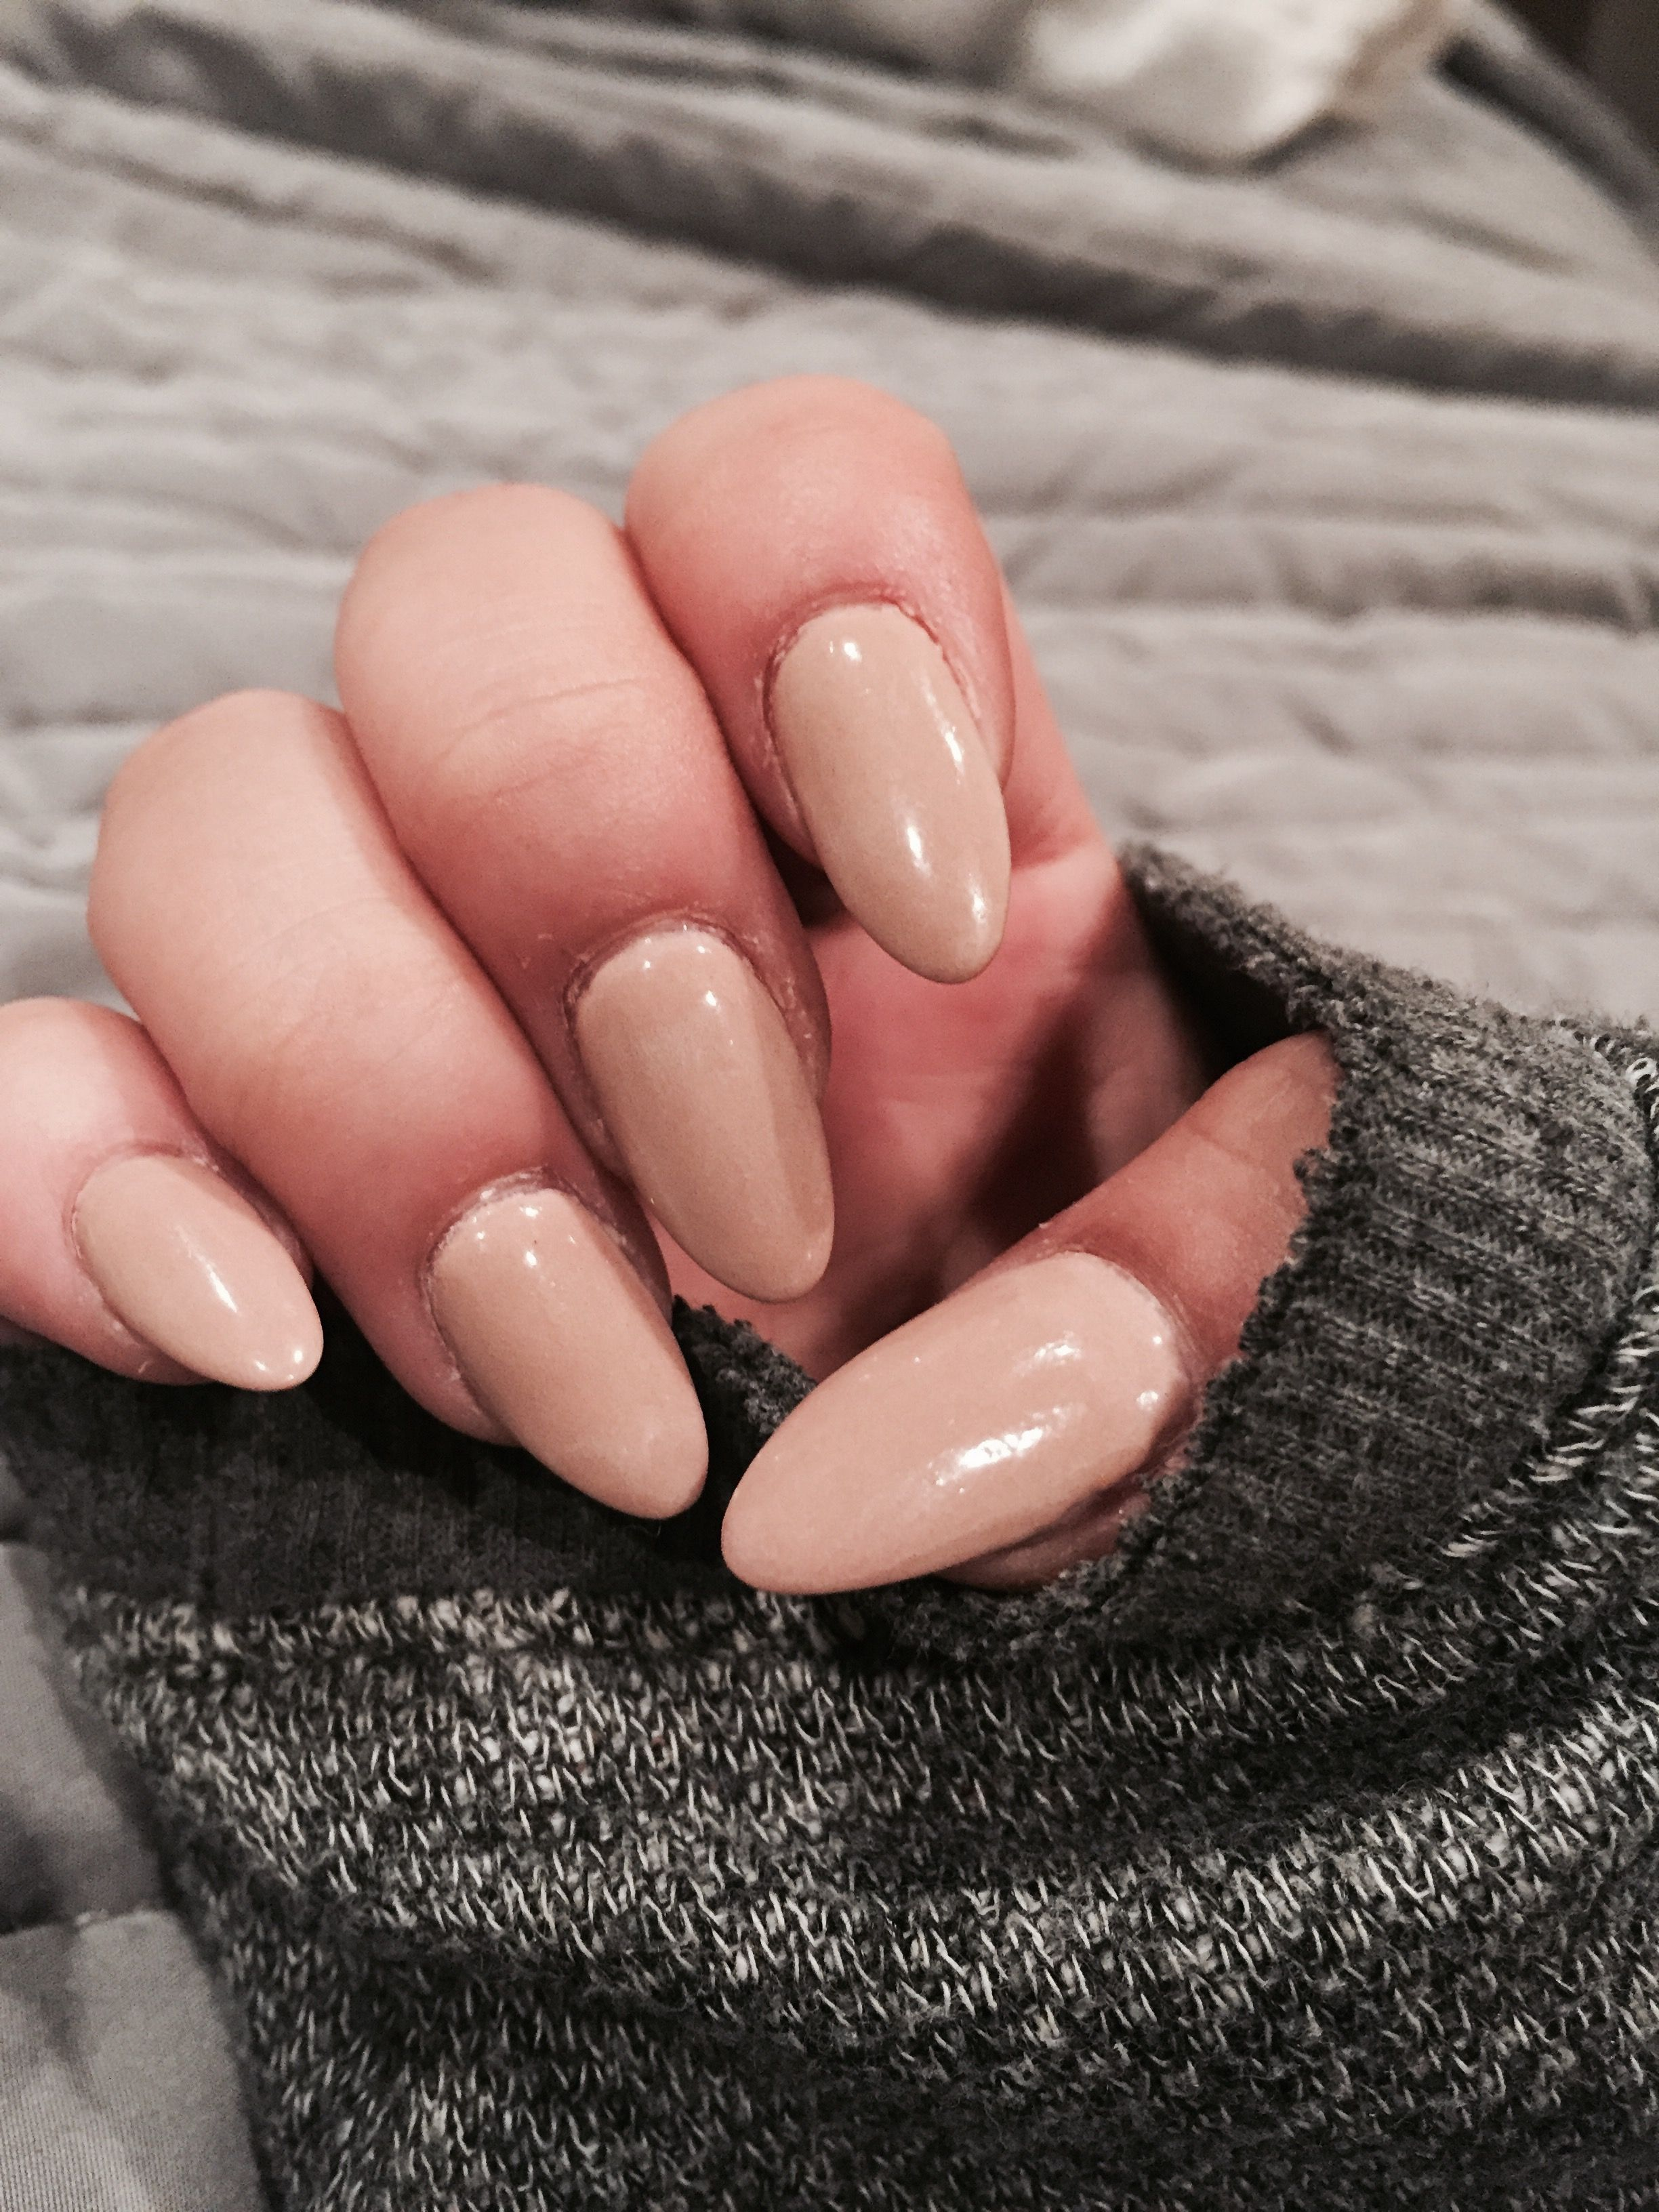 Neutral nude nails shape long almond pointed round cute nex gen ...